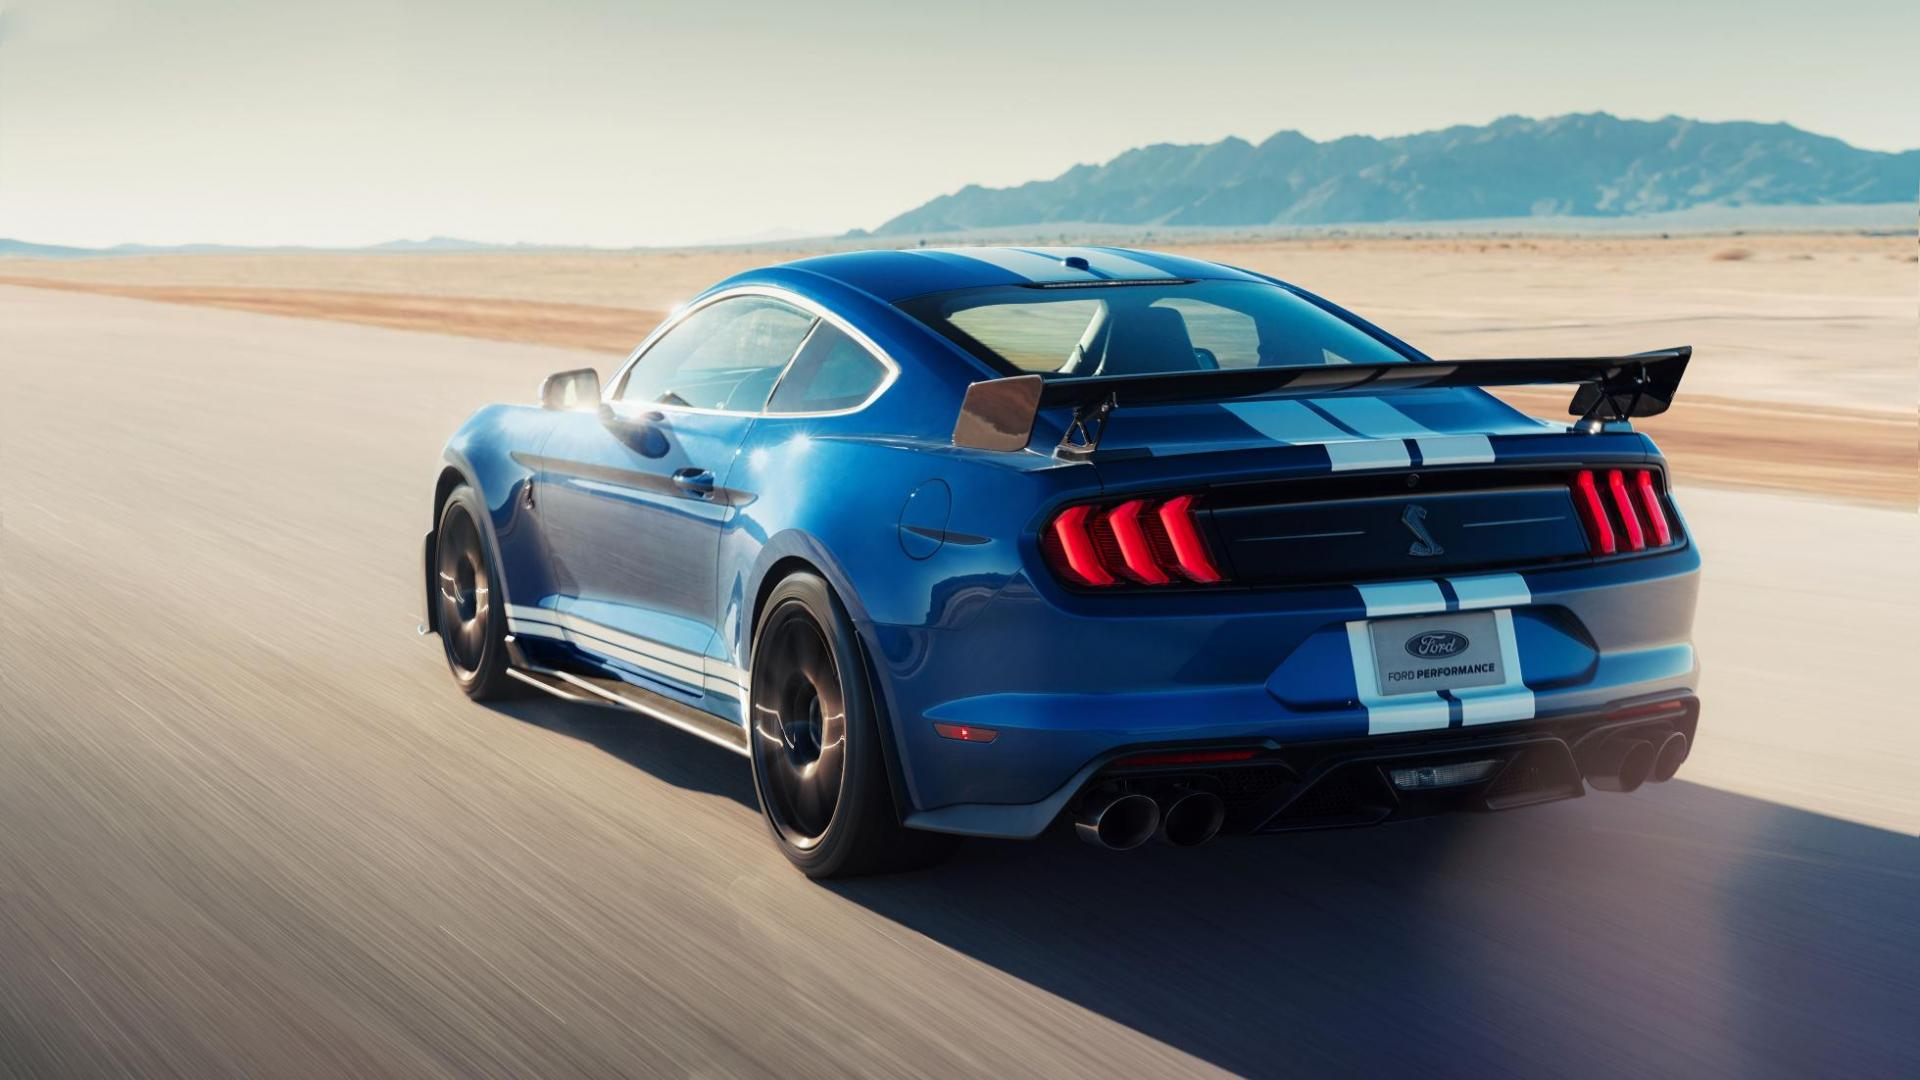 Ford Mustang Shelby GT500 blauw